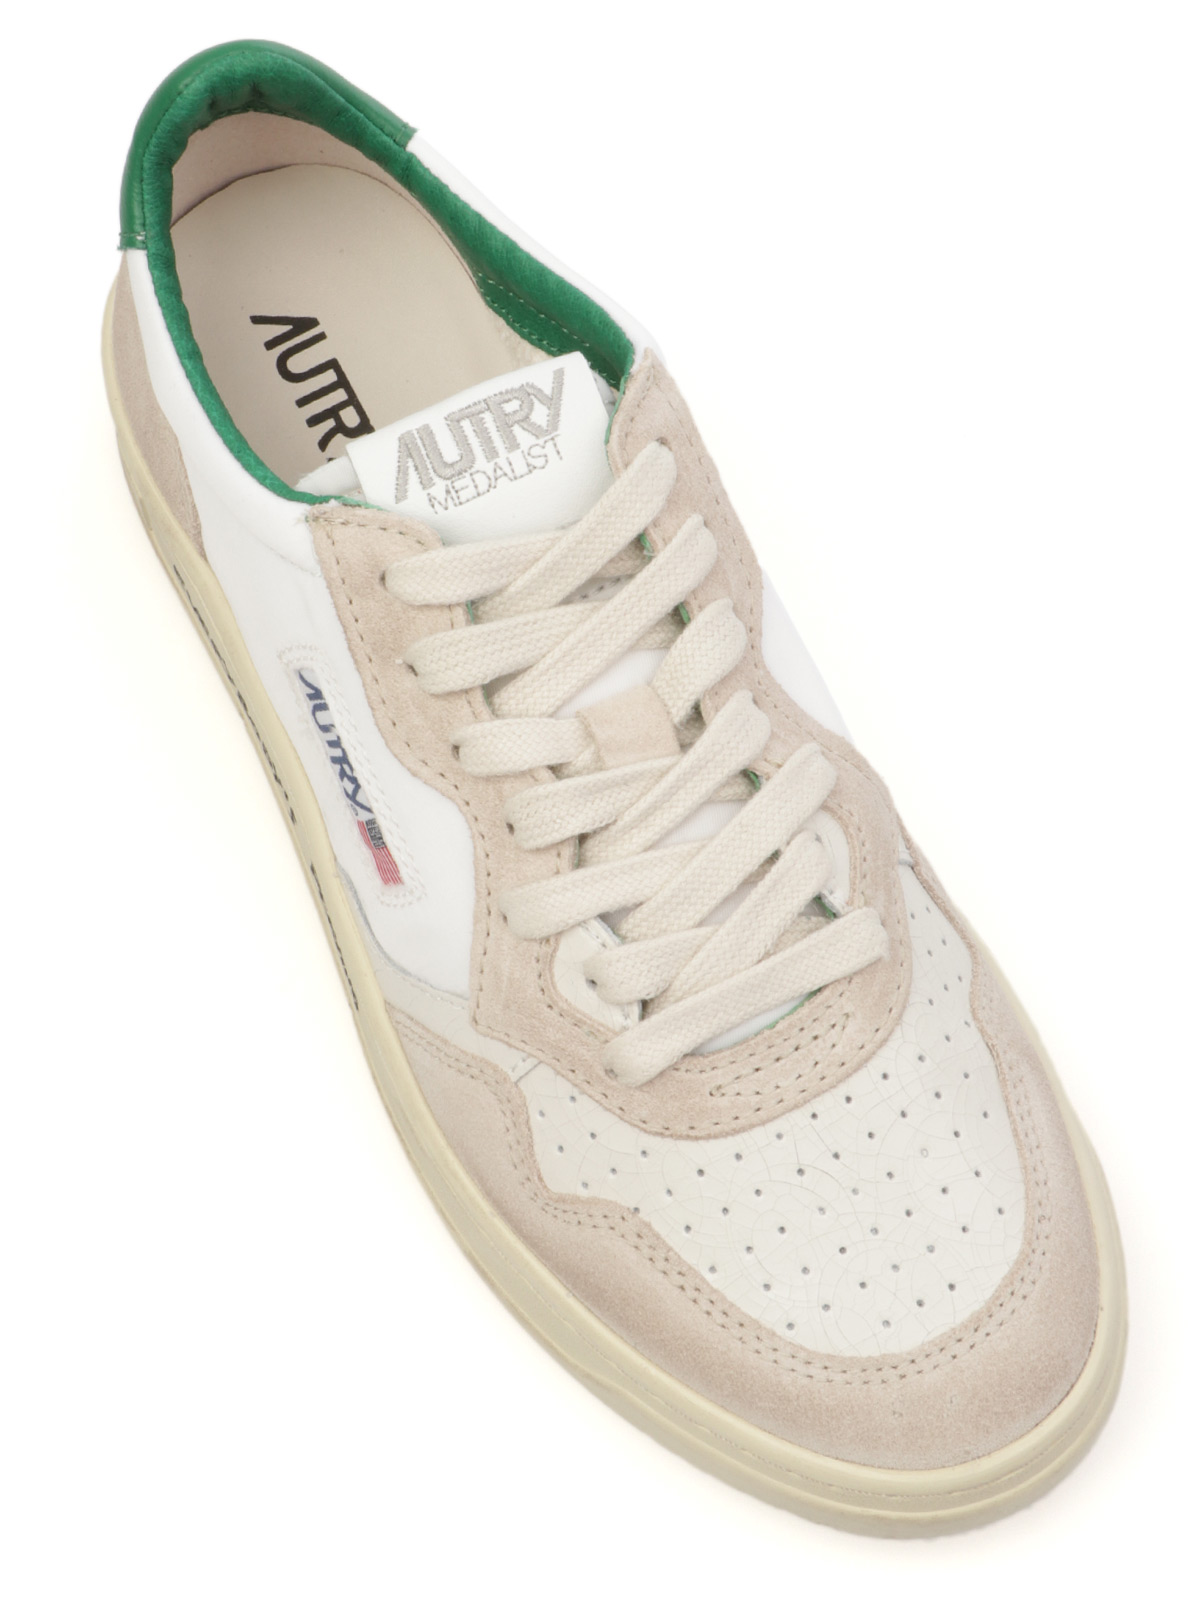 Picture of AUTRY | Men's AULM Leather and Fabric Sneakers